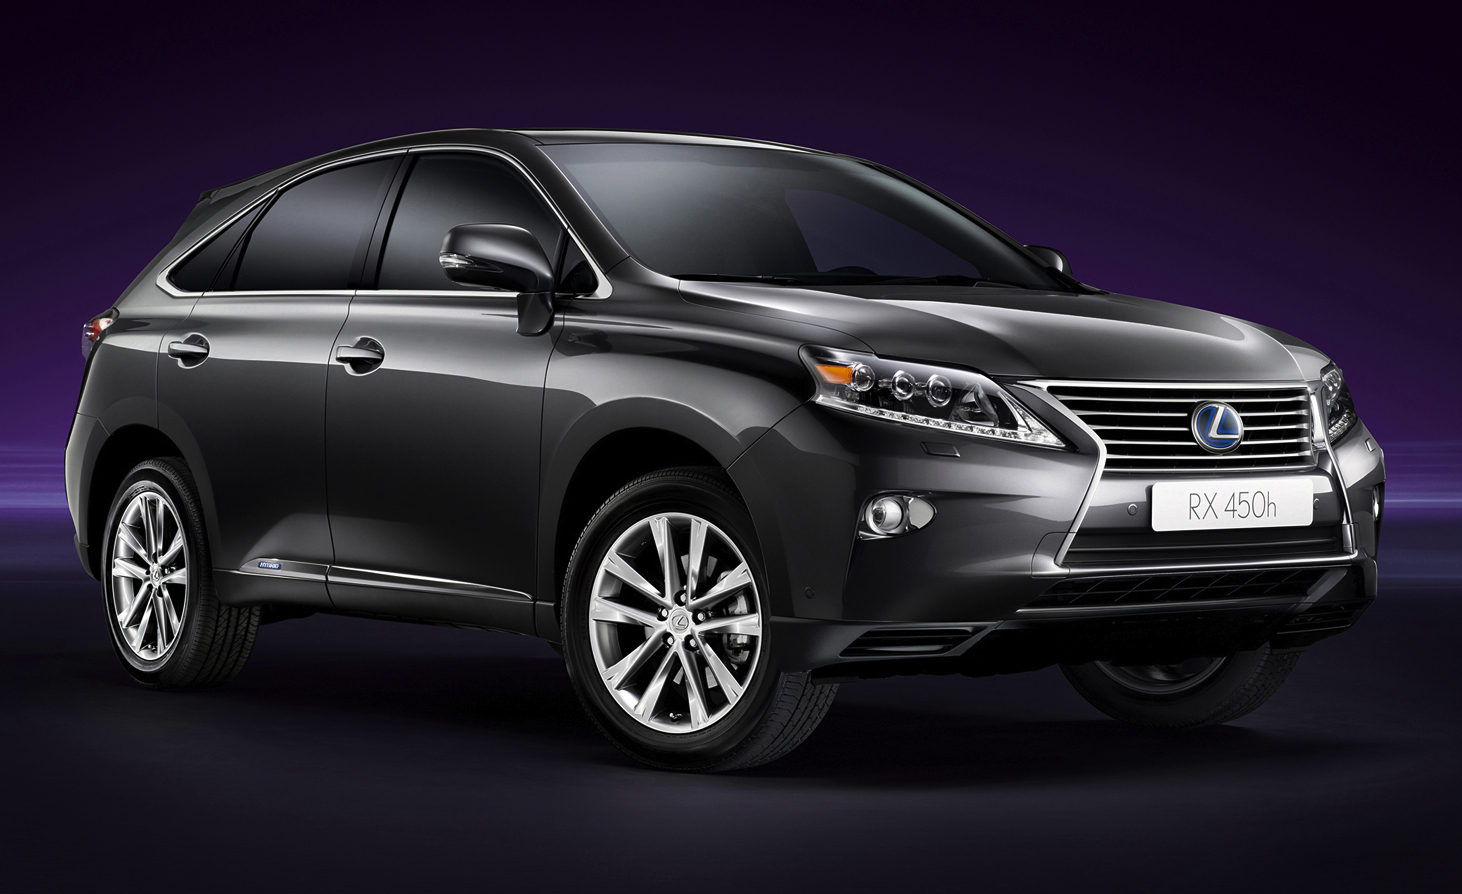 2014 lexus rx 450h review cargurus. Black Bedroom Furniture Sets. Home Design Ideas